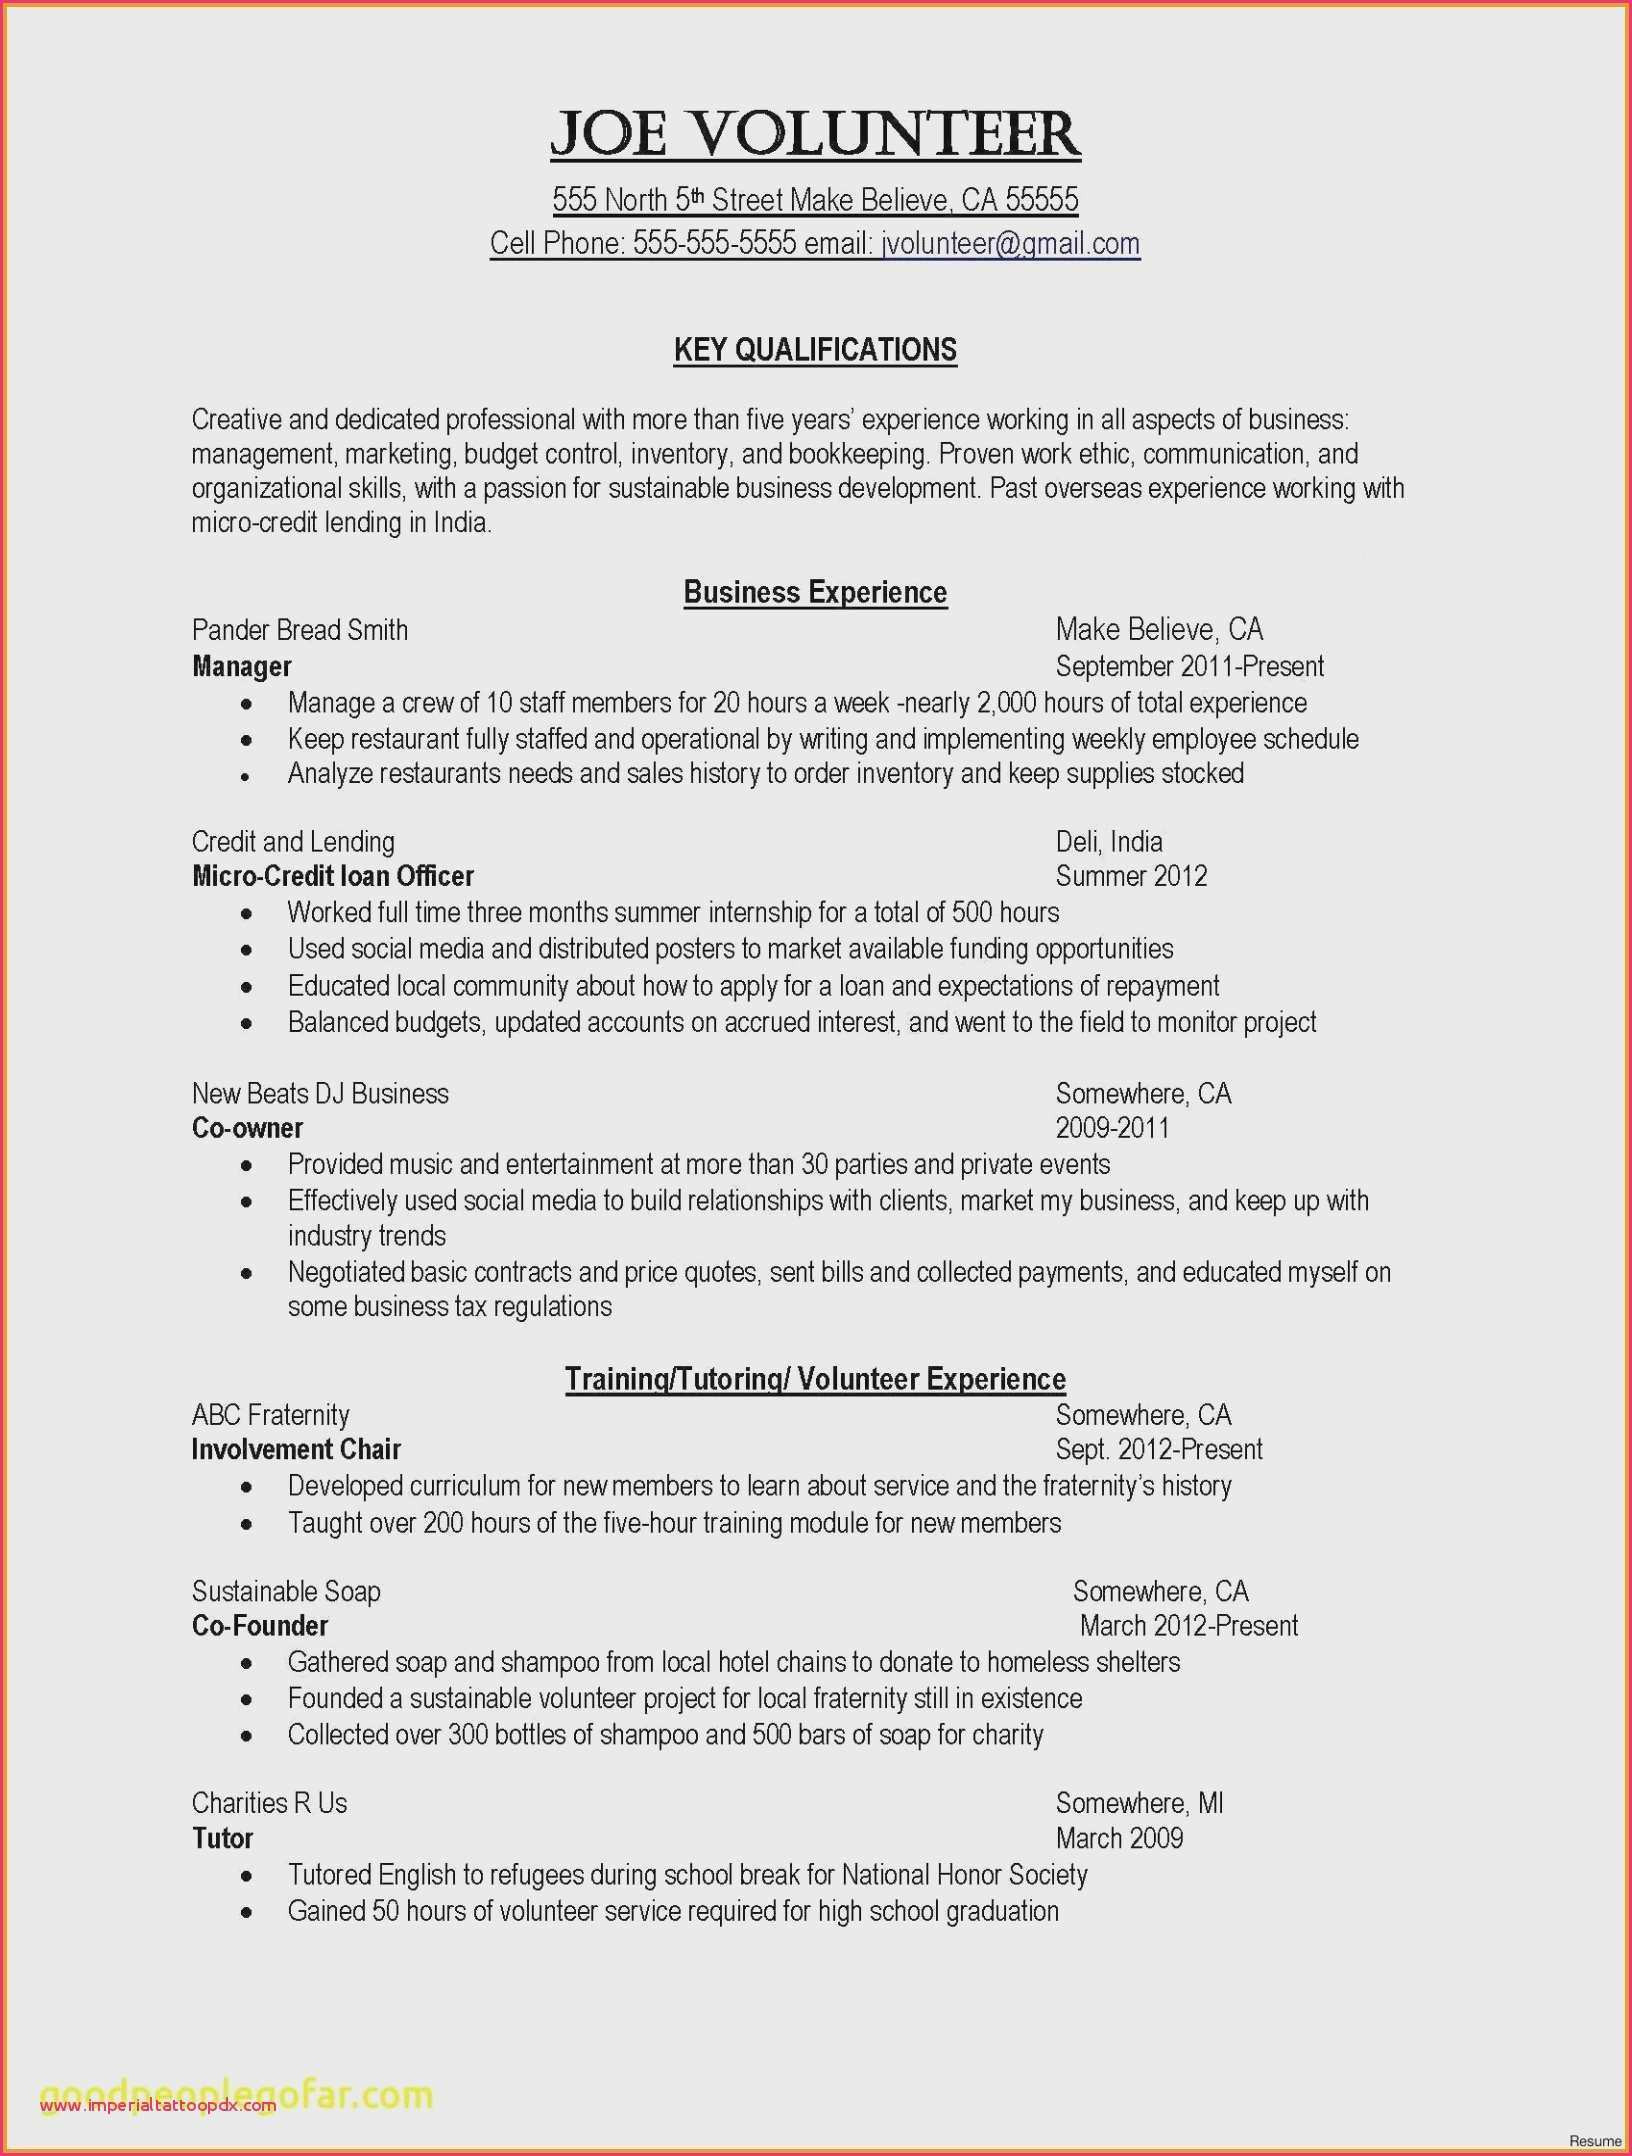 Free Sample Resume Templates - Free Resume Templates to Download Beautiful Fresh Pr Template